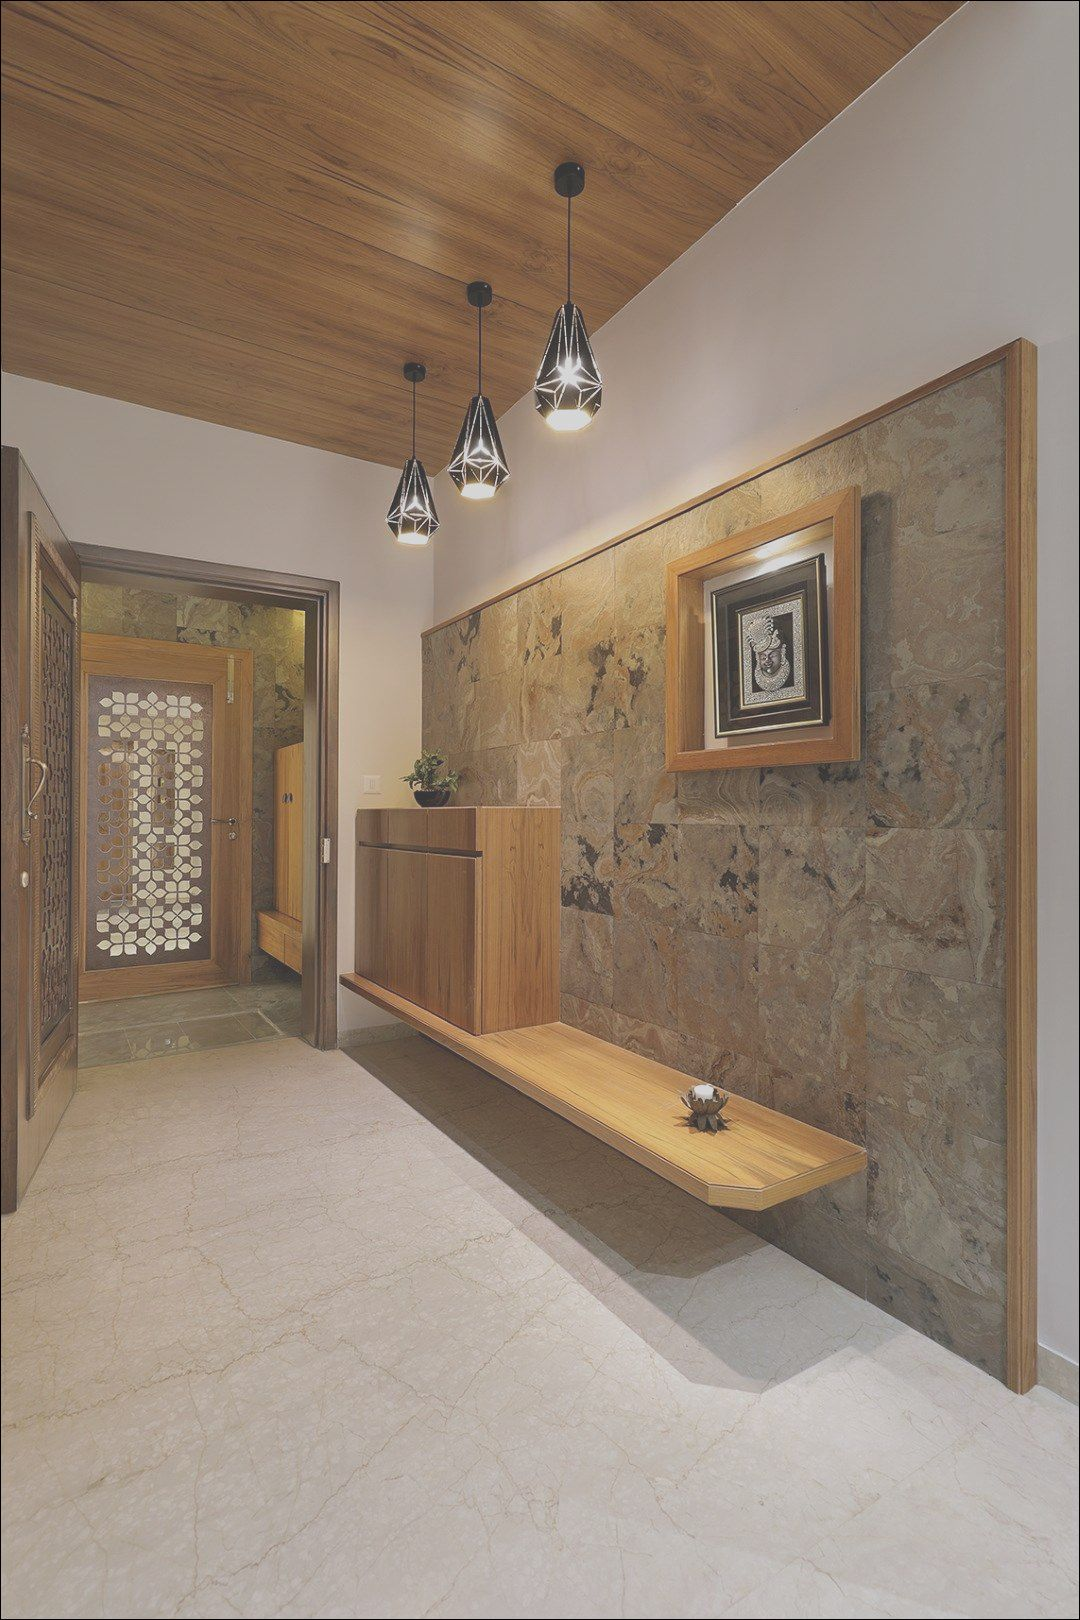 10 Local Flat Interior Design Ideas Gallery in 10  Home entrance